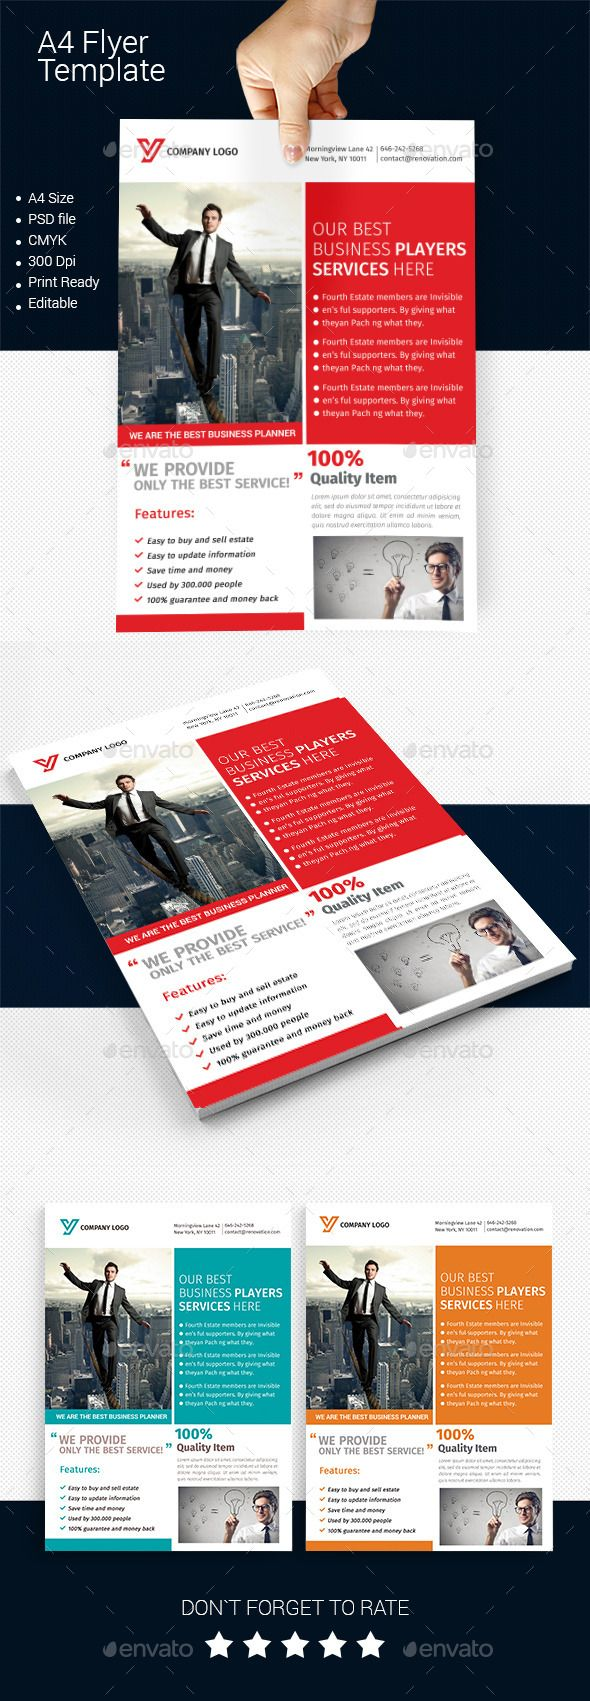 A4 Business Flyer Template 08 Fonts Logos Icons Pinterest